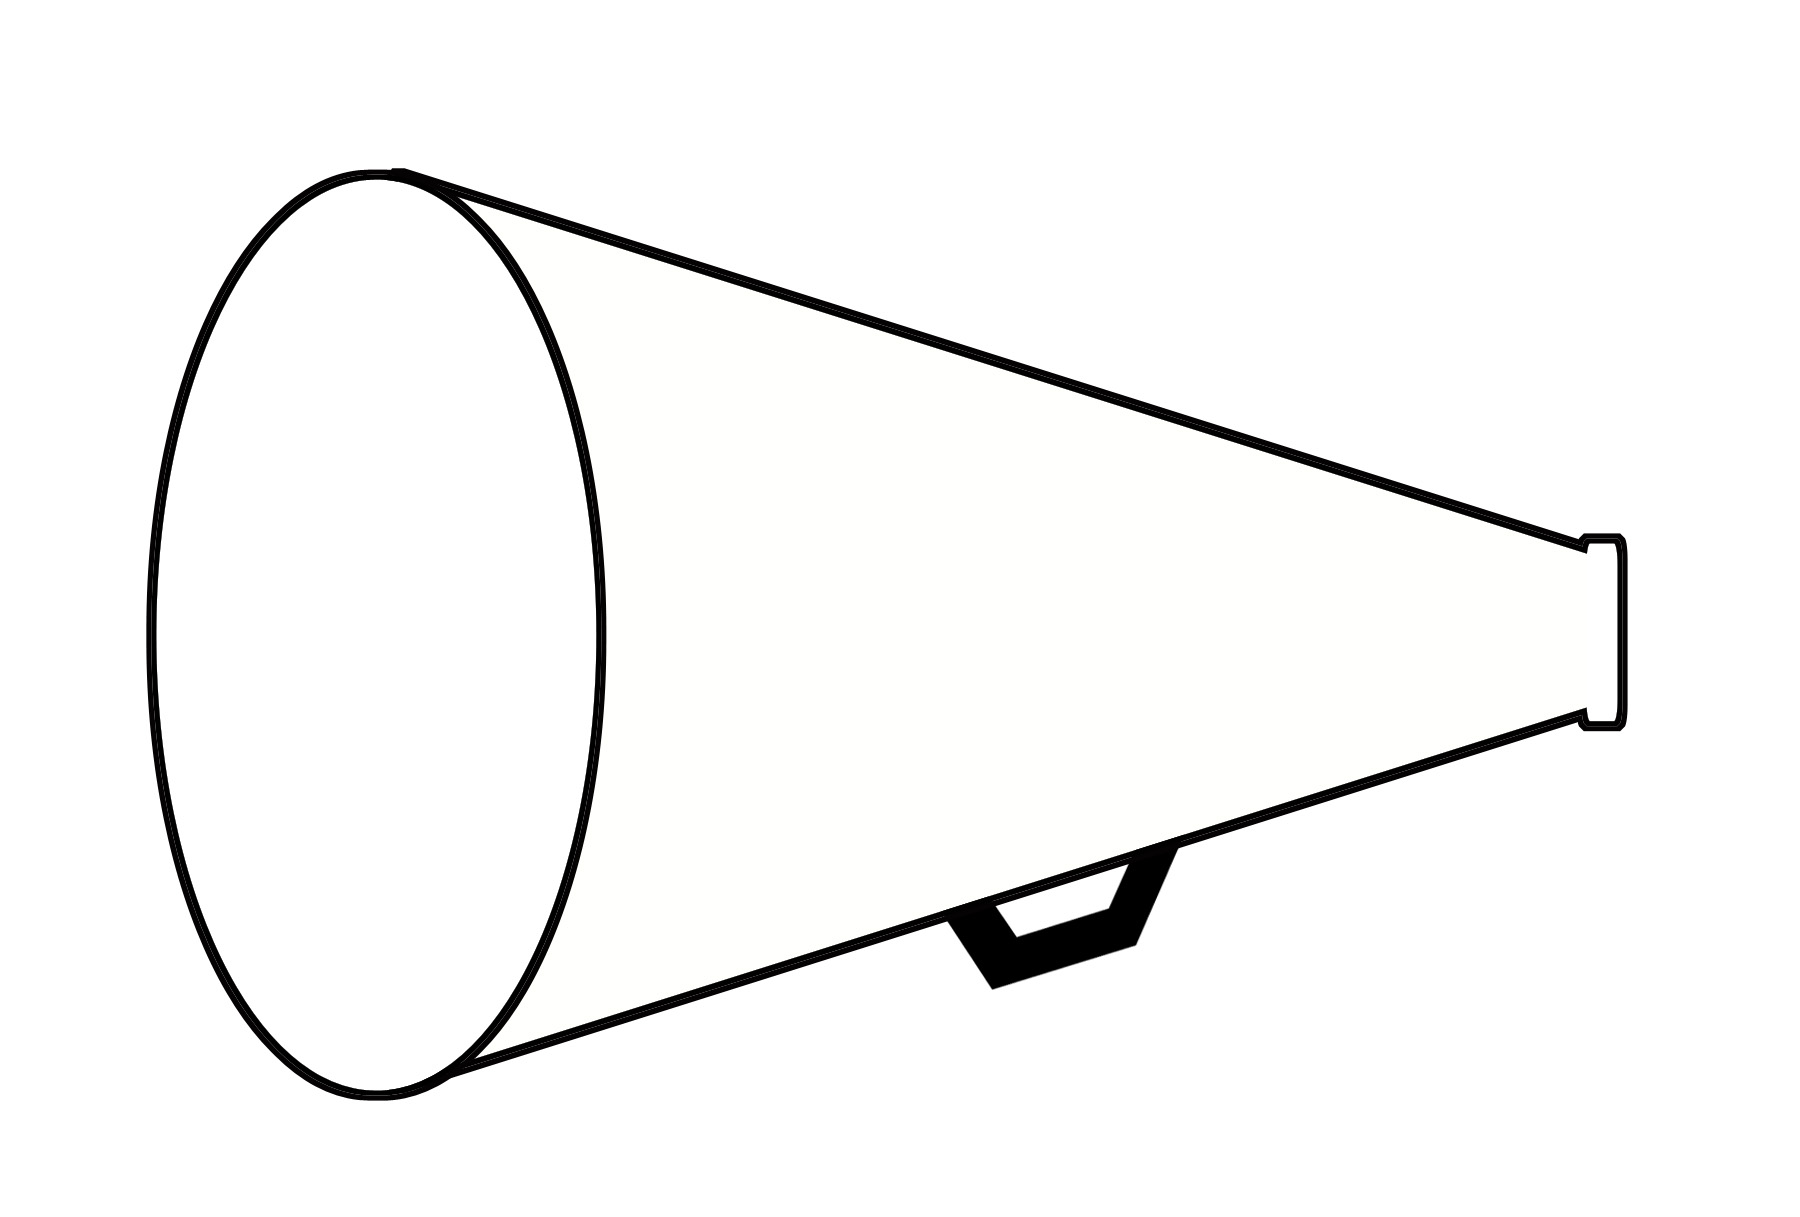 Image of cheerleader megaphone clipart 4 cheer megaphone clip - Cheer Megaphone And Poms PNG